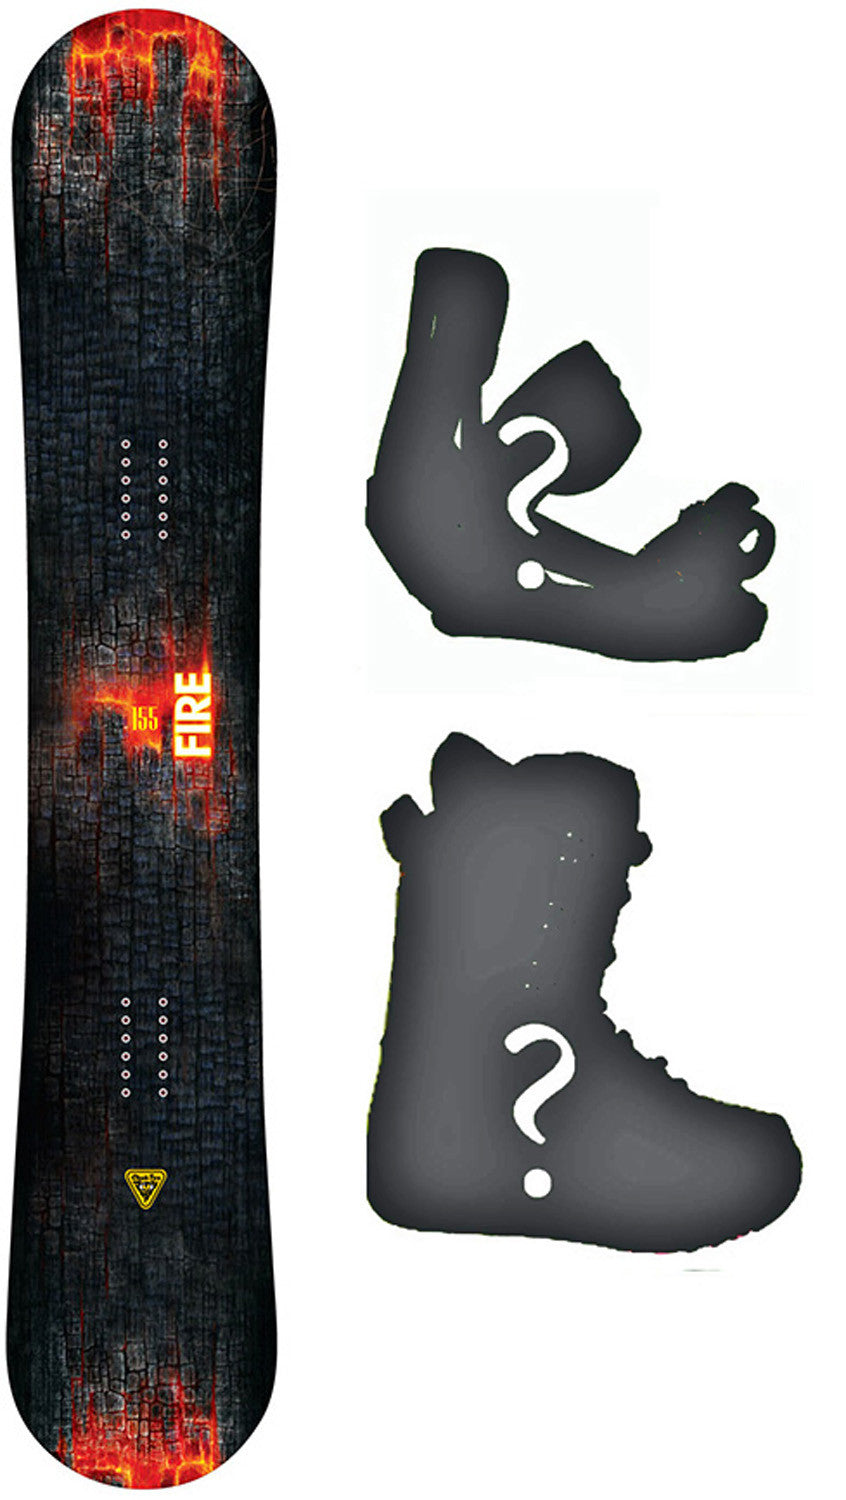 167cm Wide Black Fire Coal Camber Blem Snowboard, Build a Package with Boots and Bindings